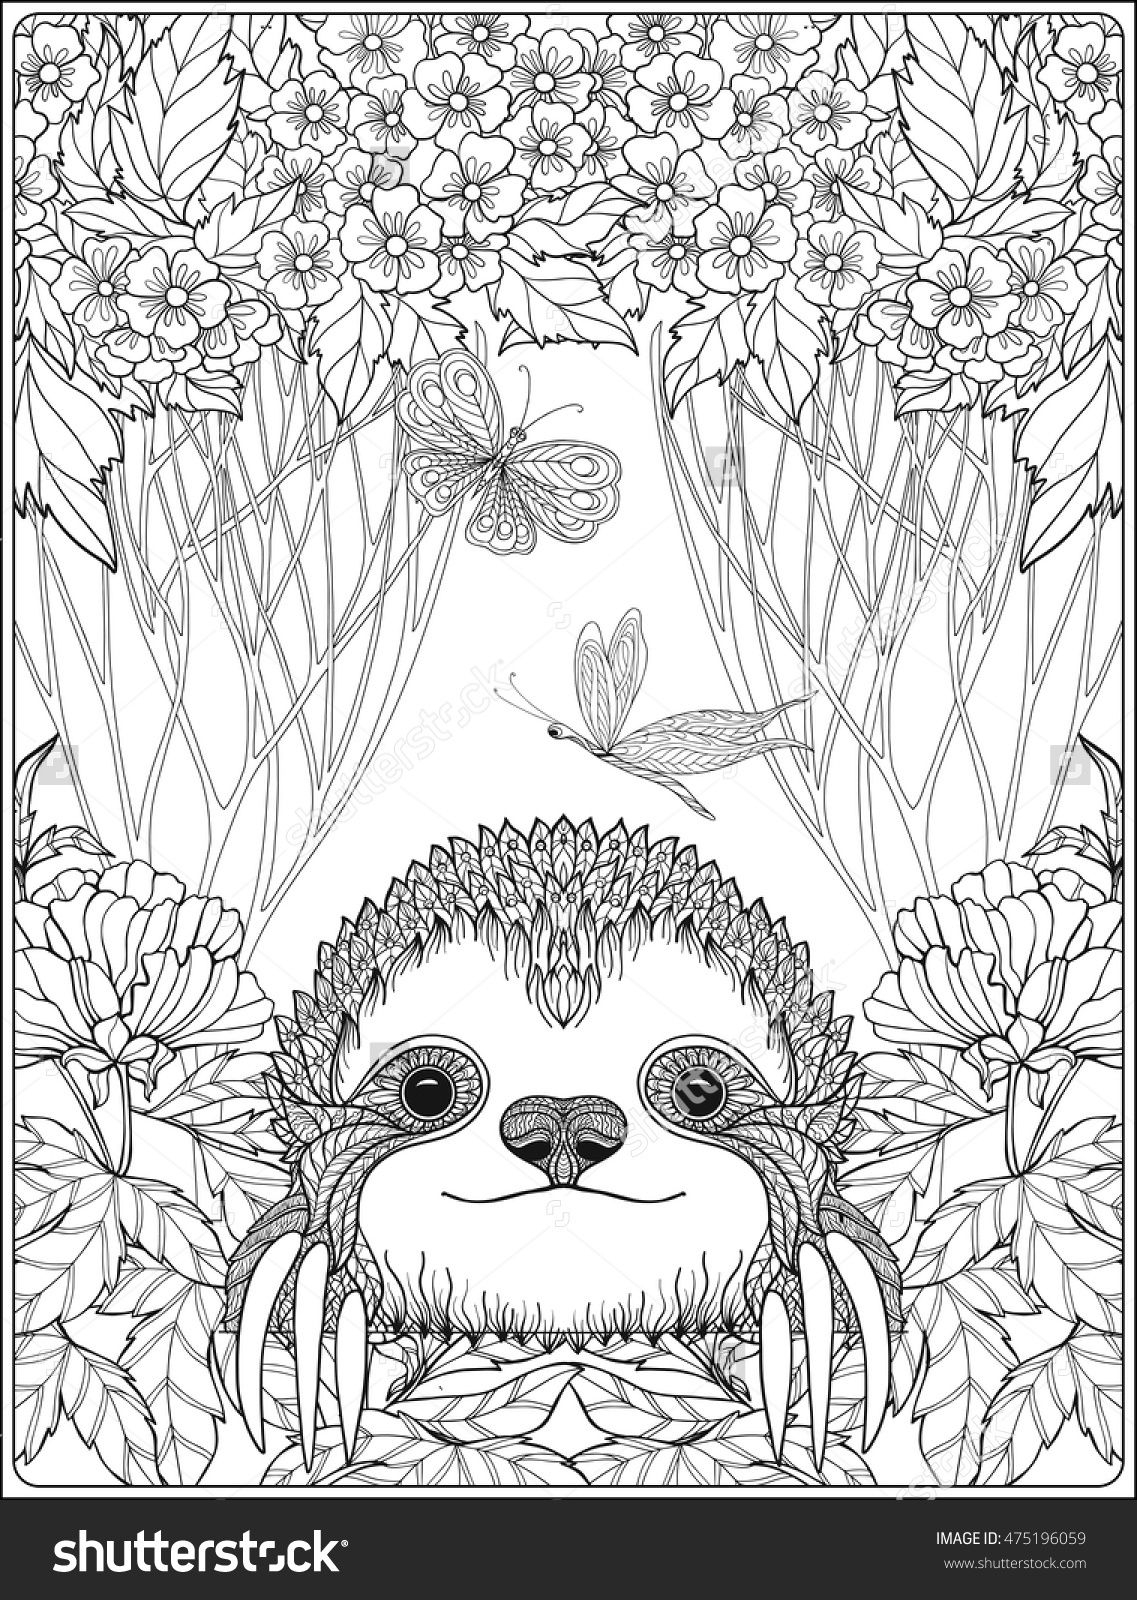 free animal coloring pages for kids cute animal coloring pages for kids coloring home animal kids free pages for coloring